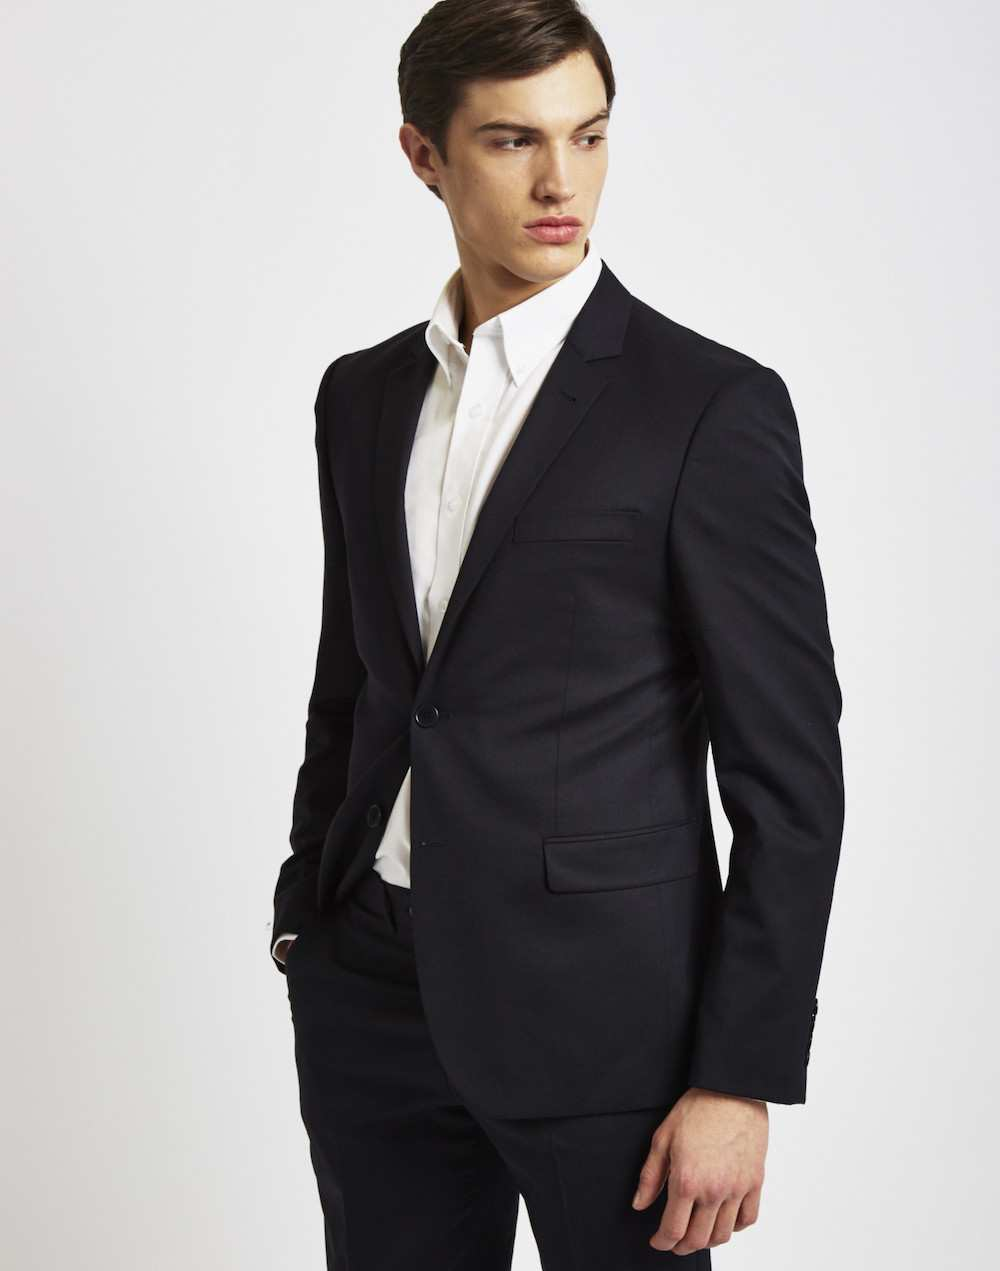 man in suit and tie photo - 1